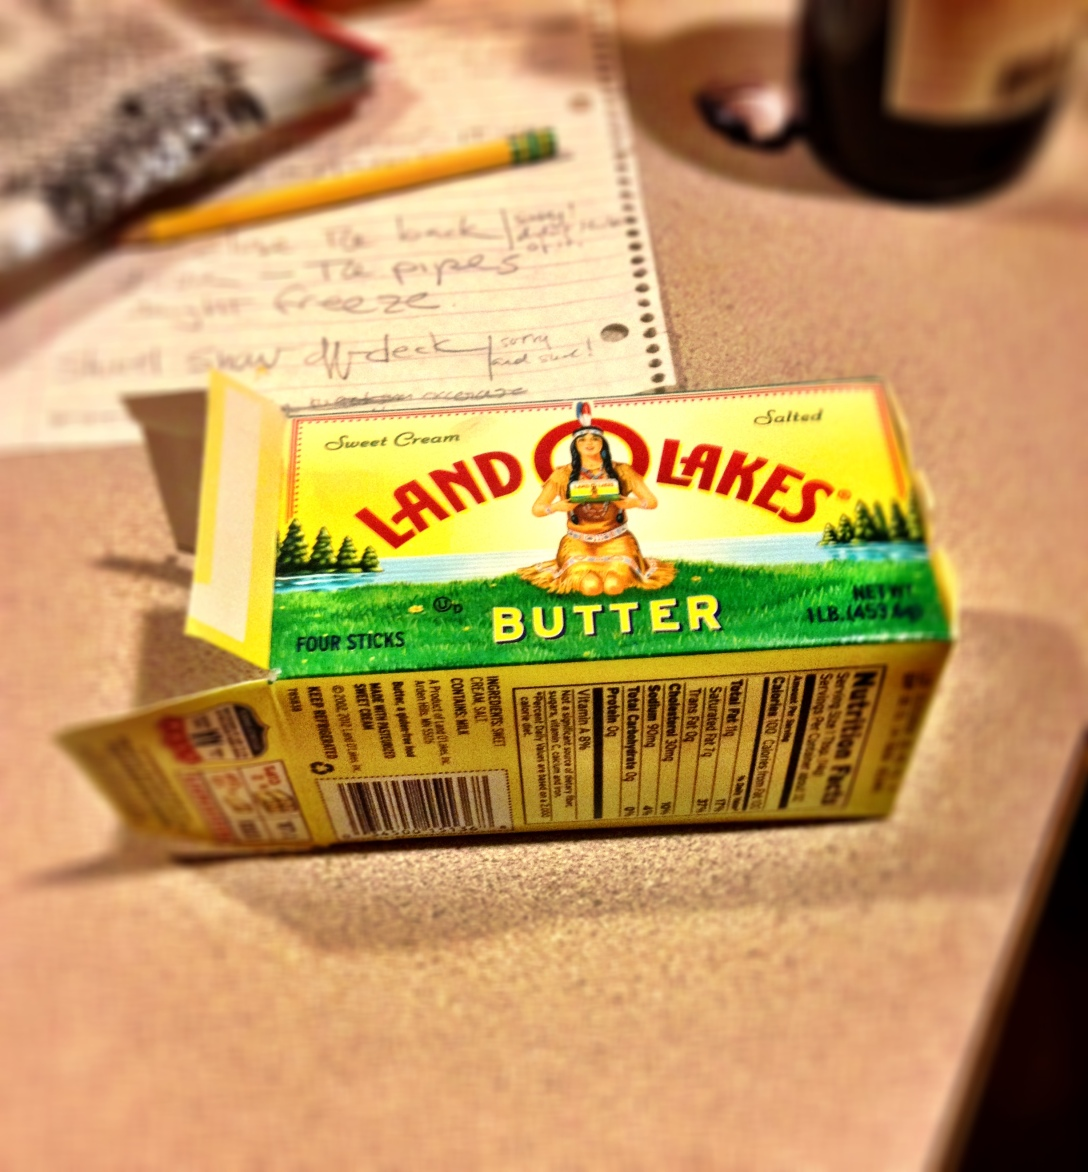 Stereotype butter